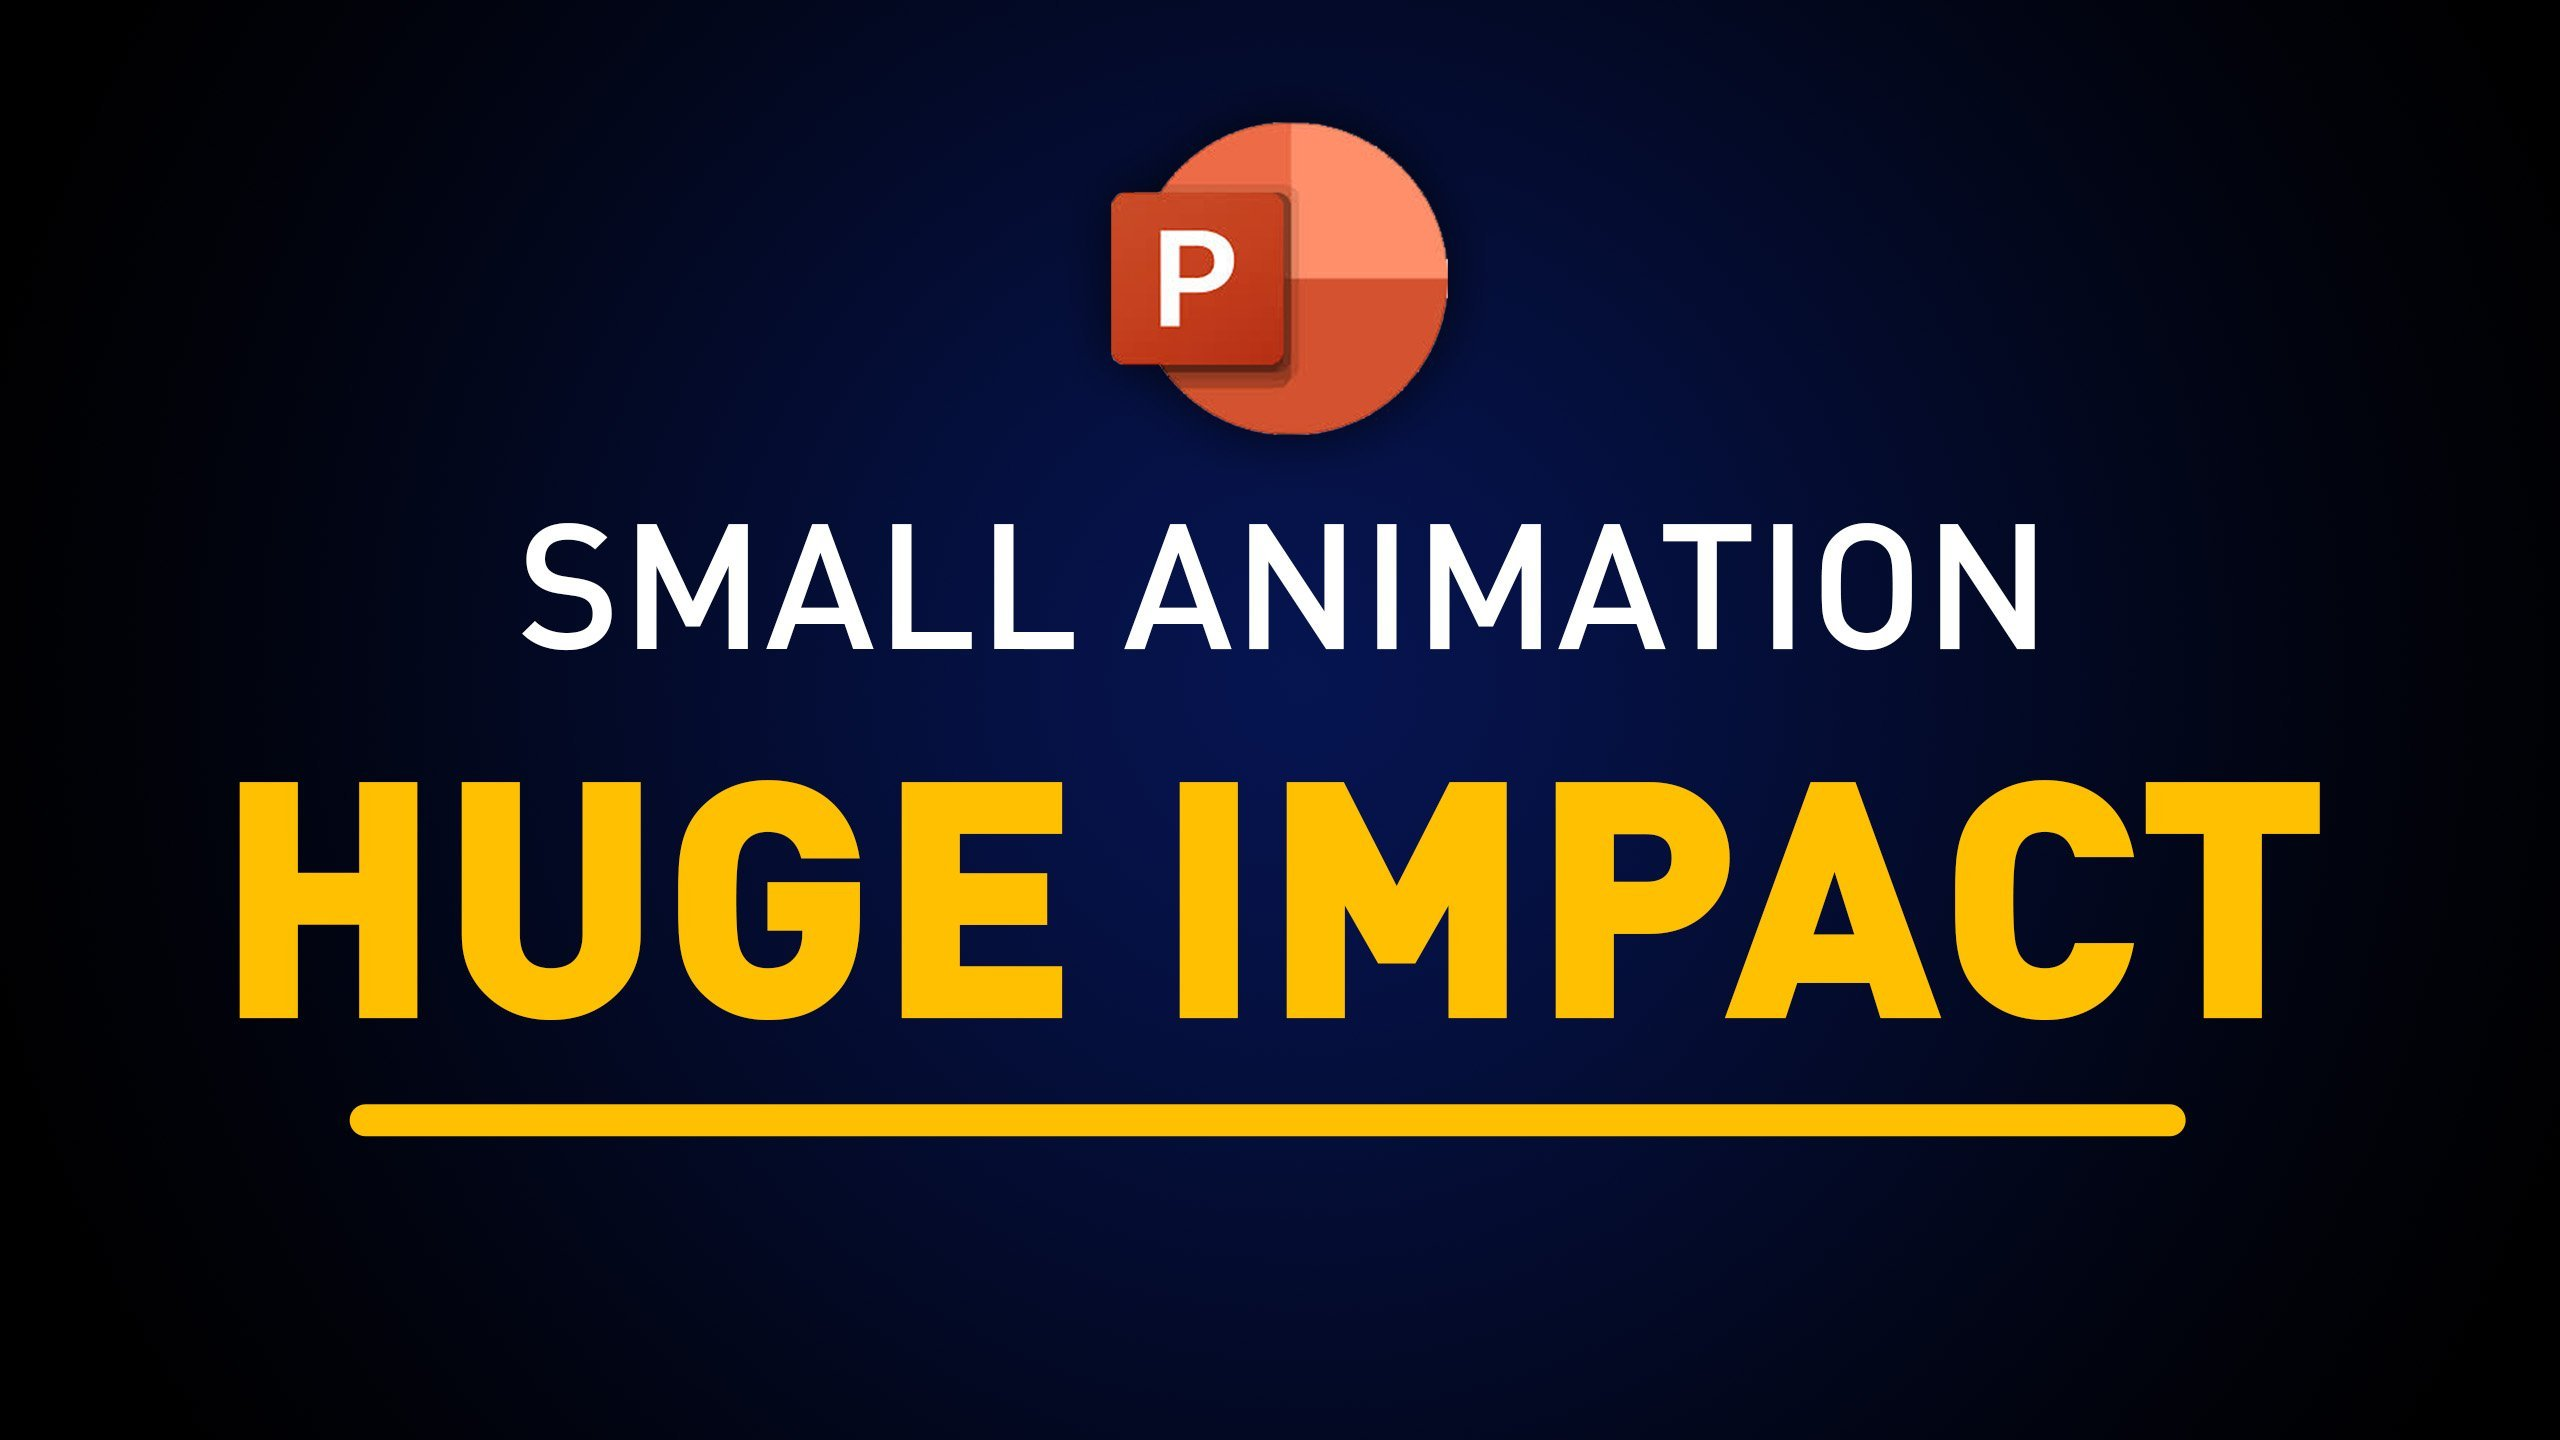 10 Minute Intro Animation in PowerPoint